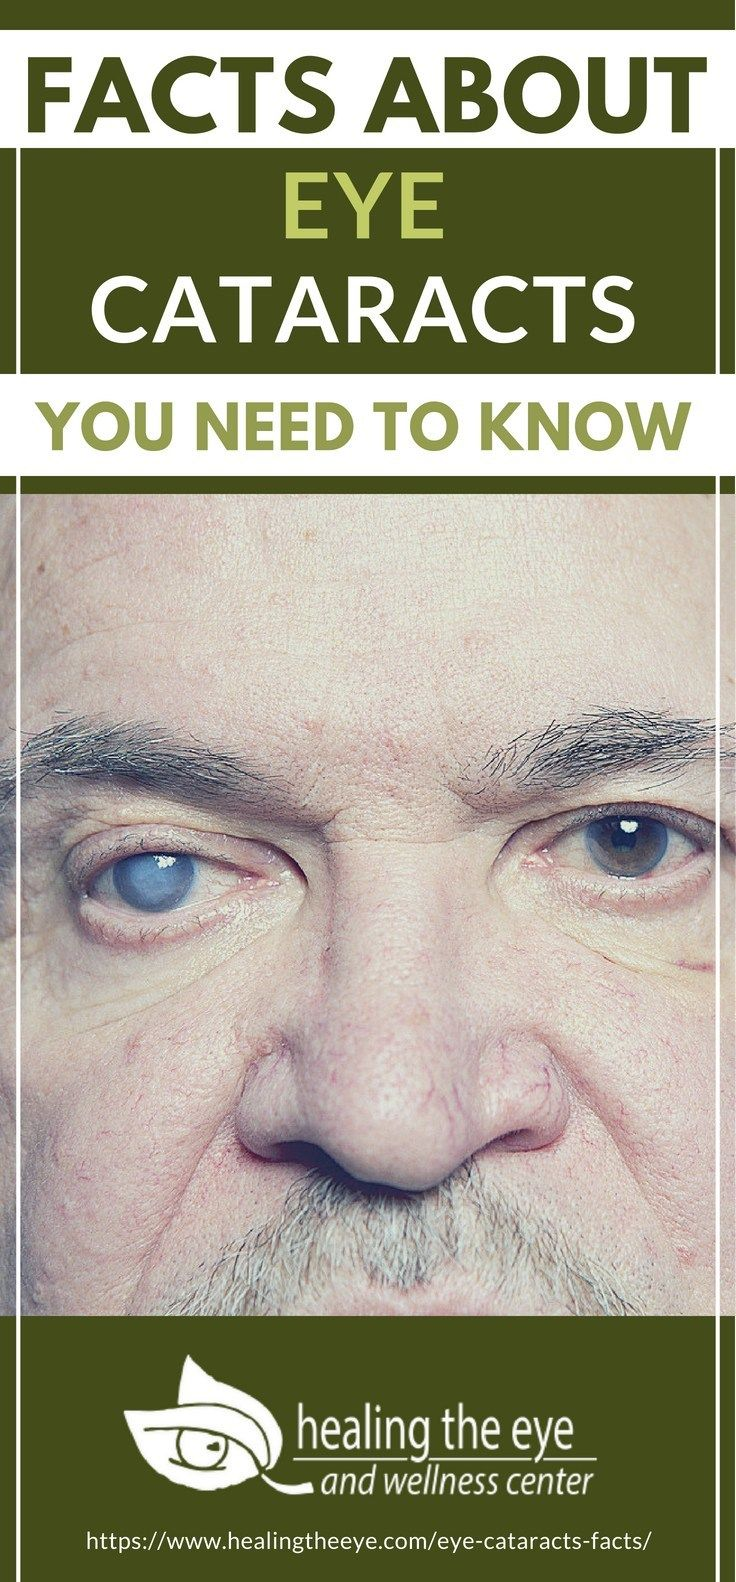 Facts About Eye Cataracts You Need To Know Eye cataract